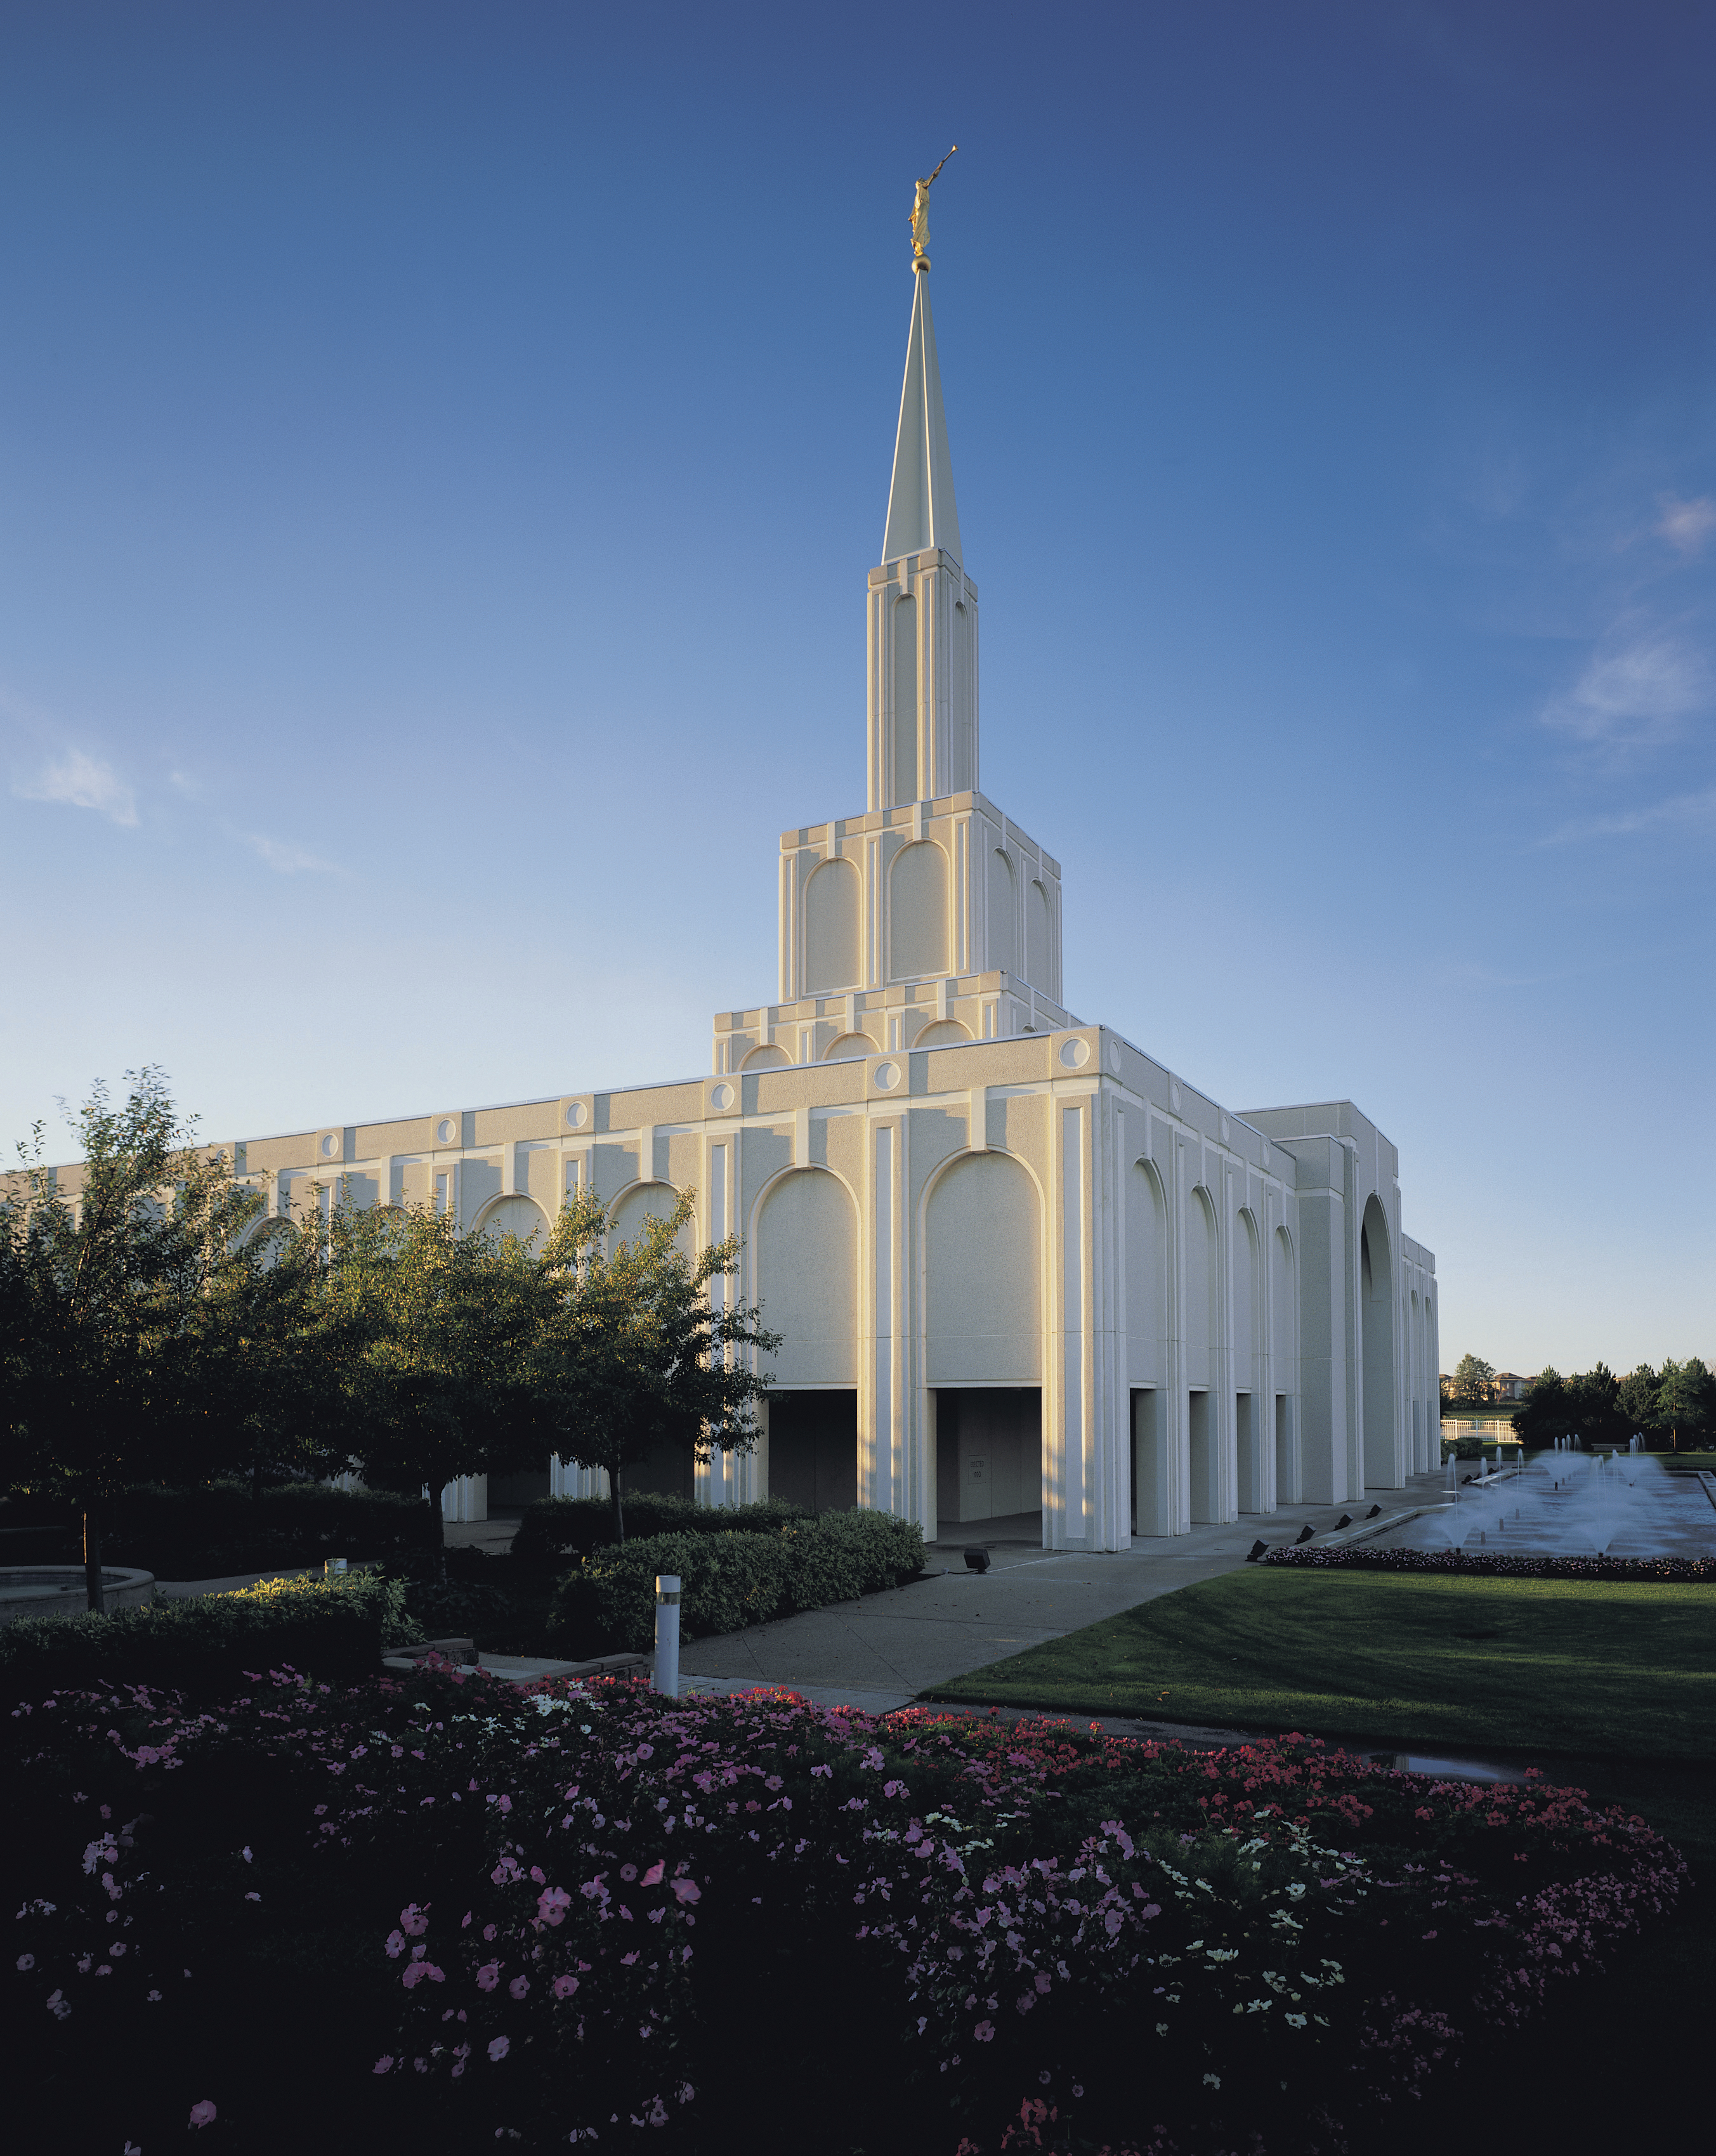 The Toronto Ontario Temple north side, including scenery.